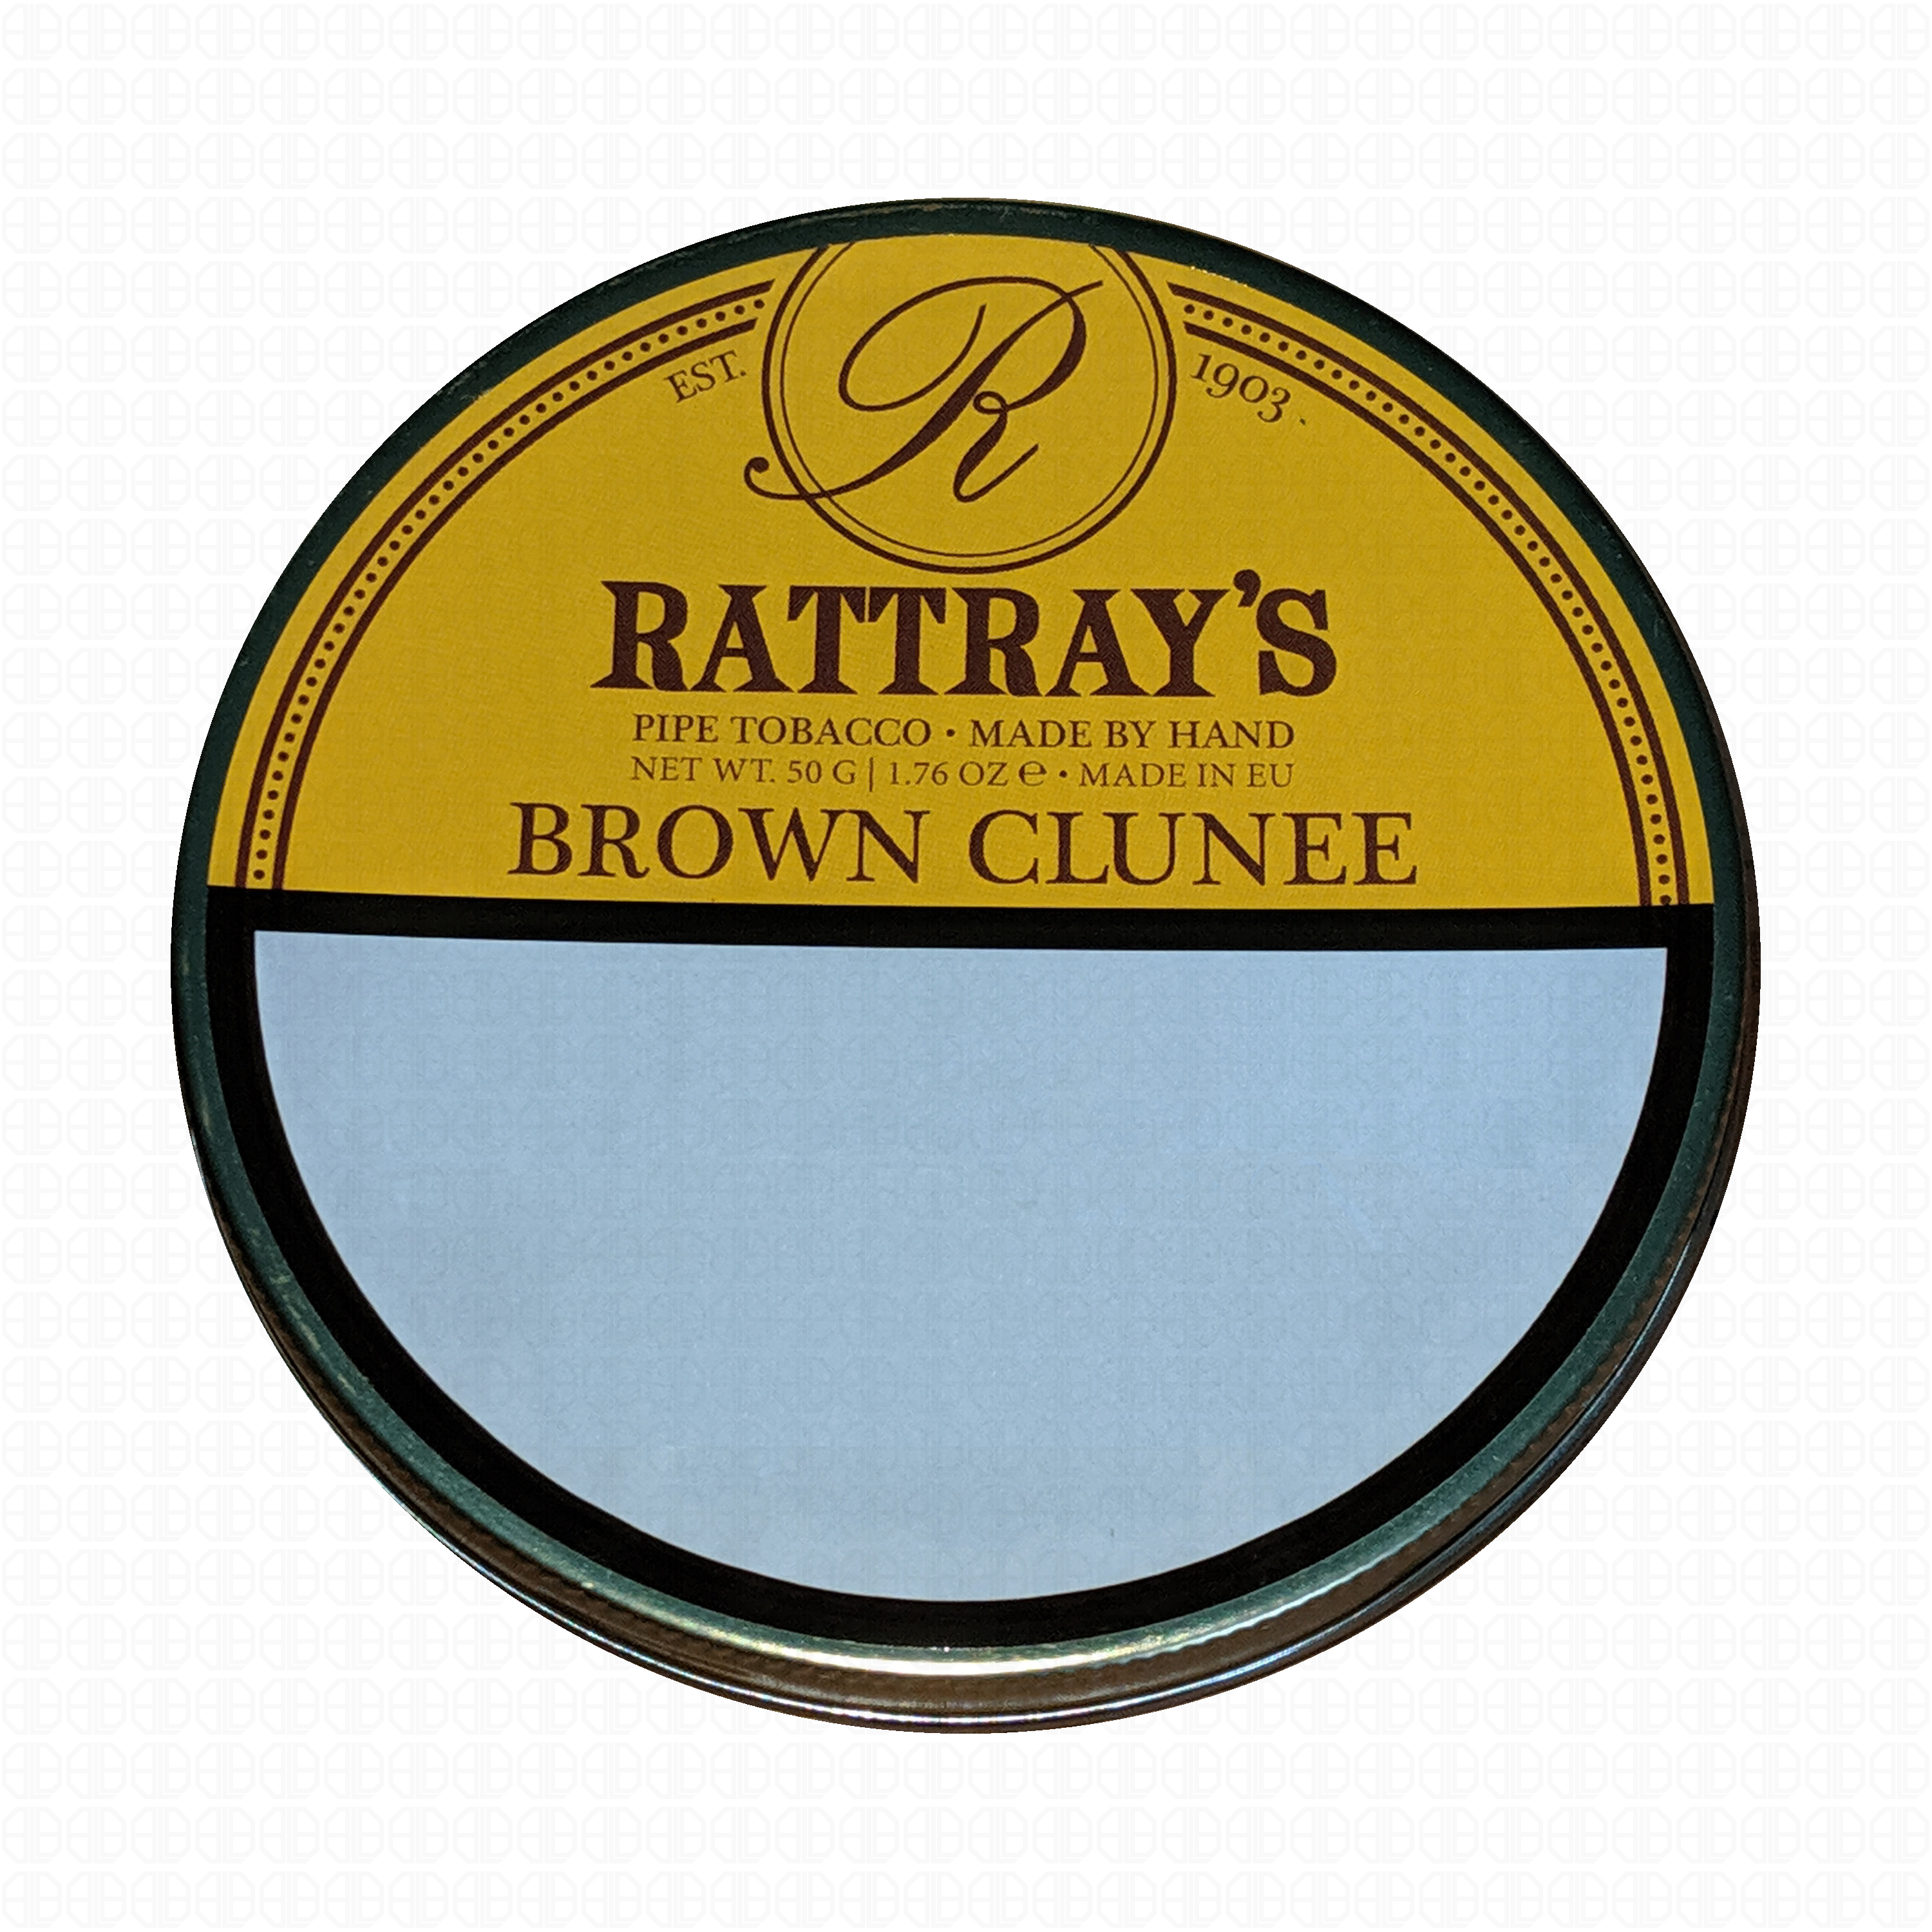 Rattrays Brown Clunee (50g)